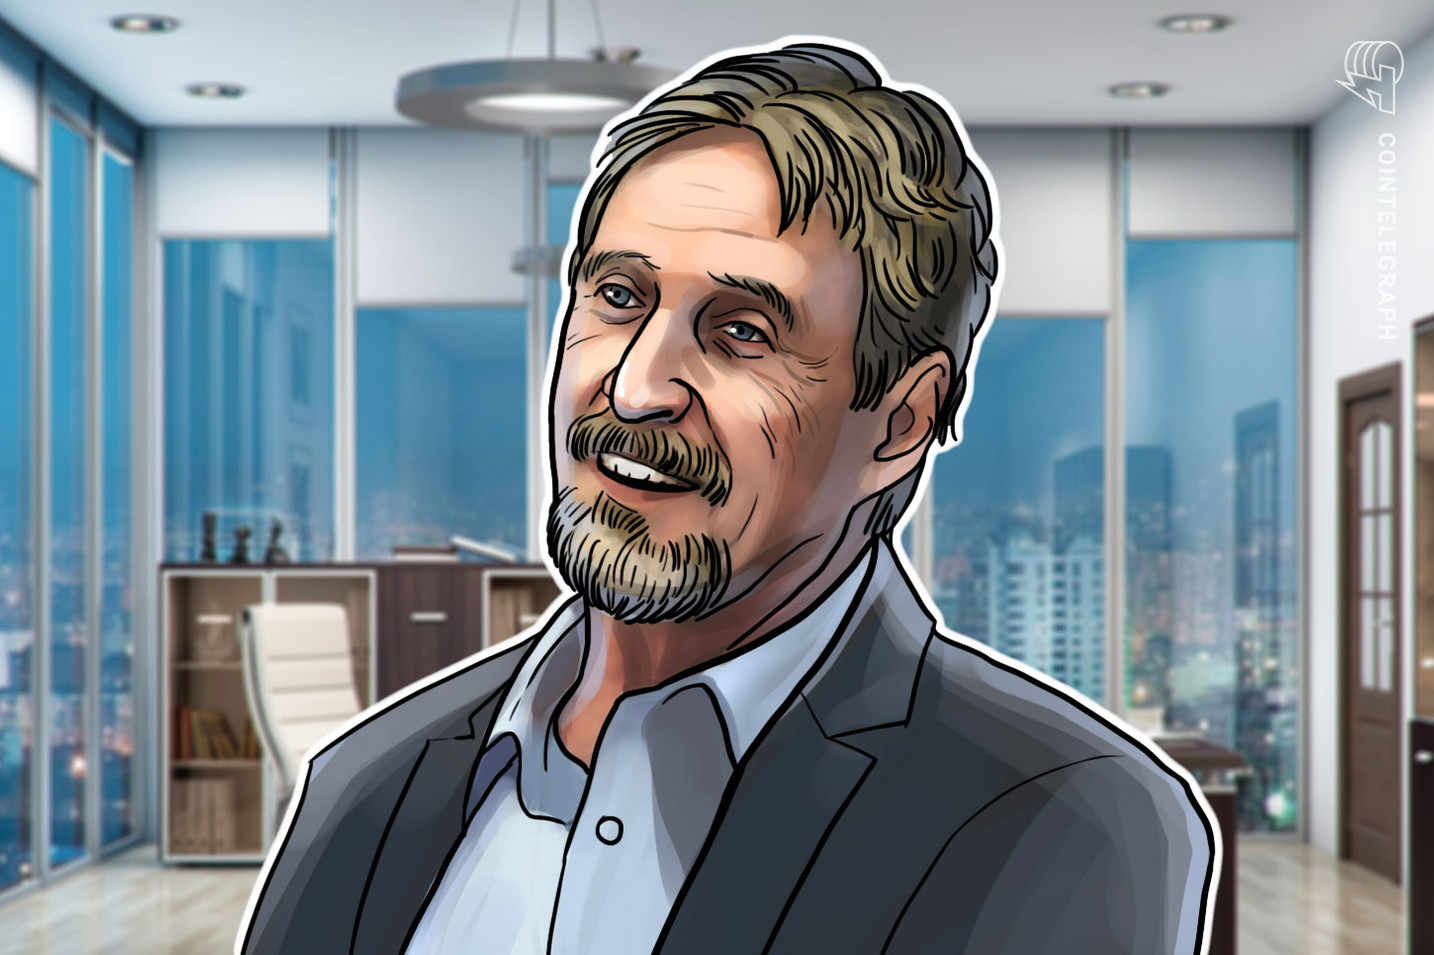 McAfee claims DOGE price prediction to blame for latest US charges